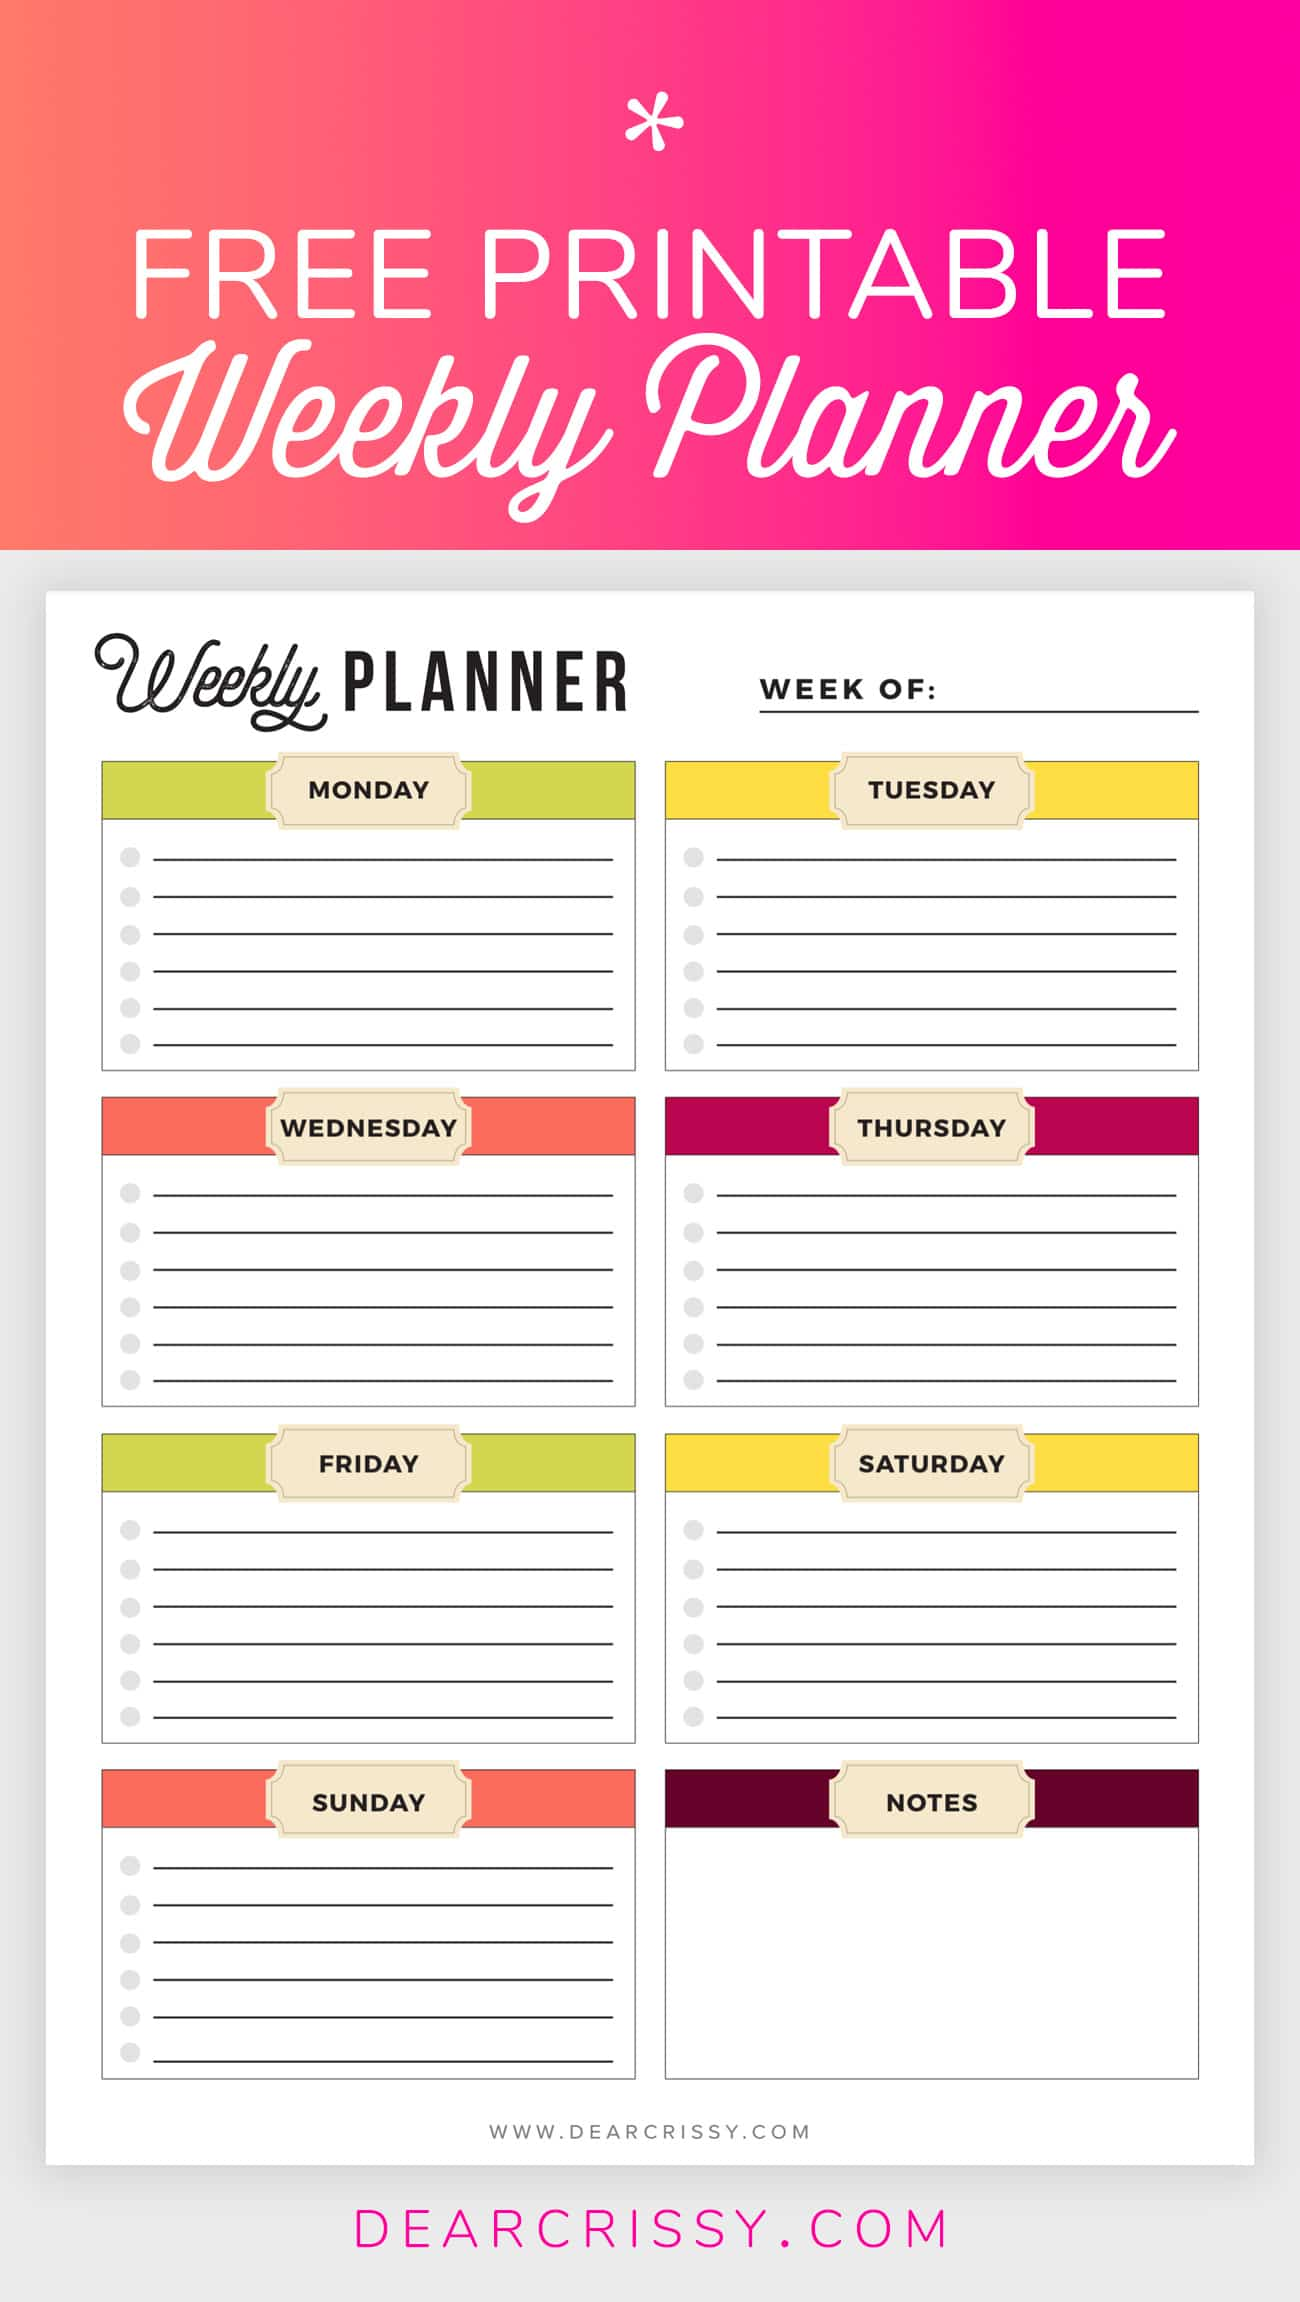 Free printable weekly planner weekly planner printable for To do planner online